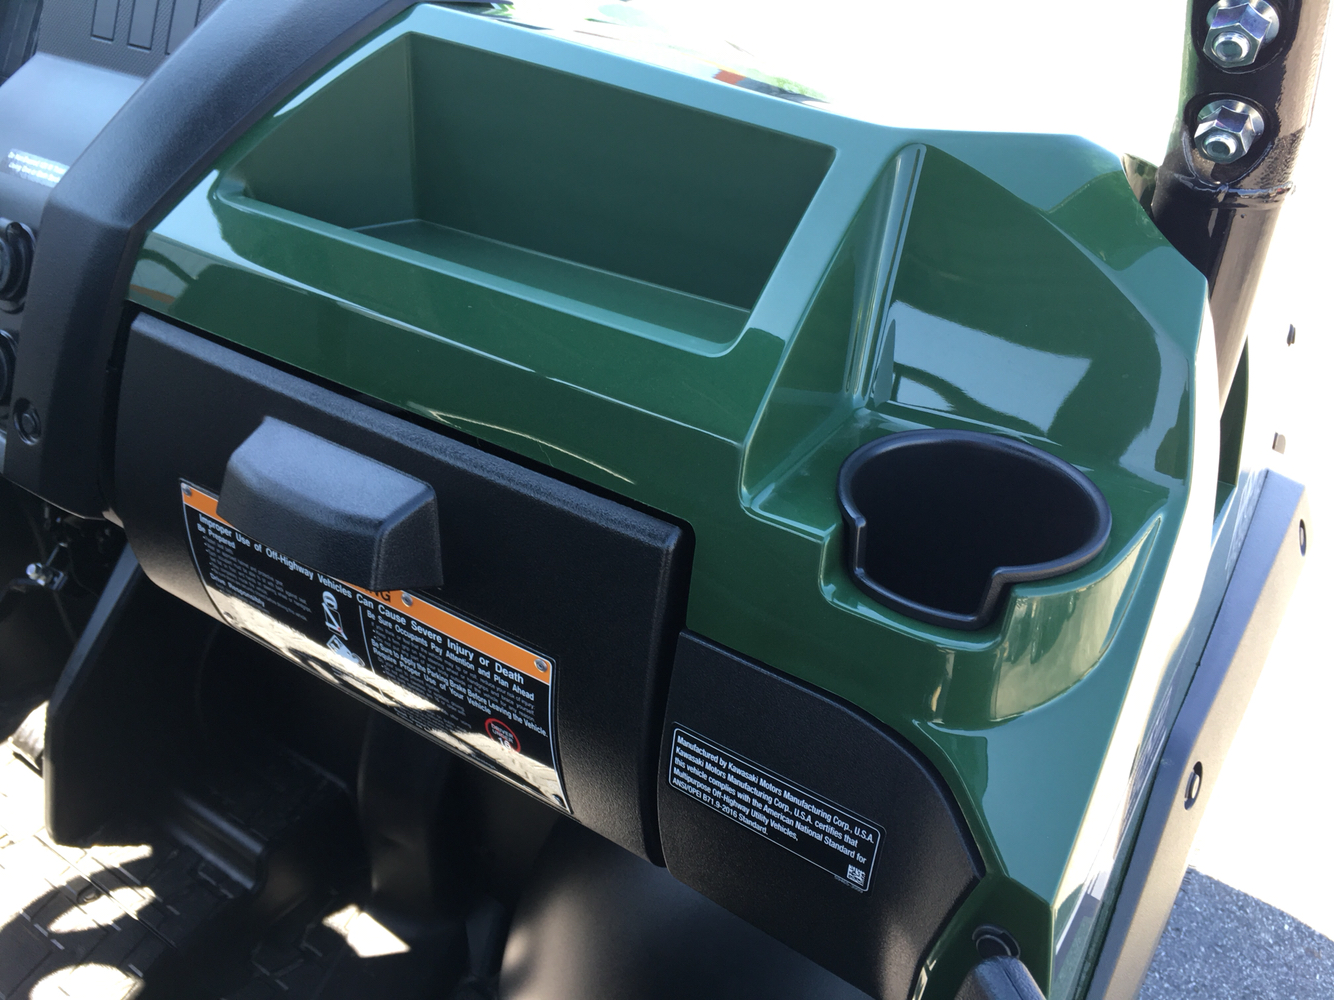 2019 Kawasaki Mule PRO-FXT EPS in Evansville, Indiana - Photo 16